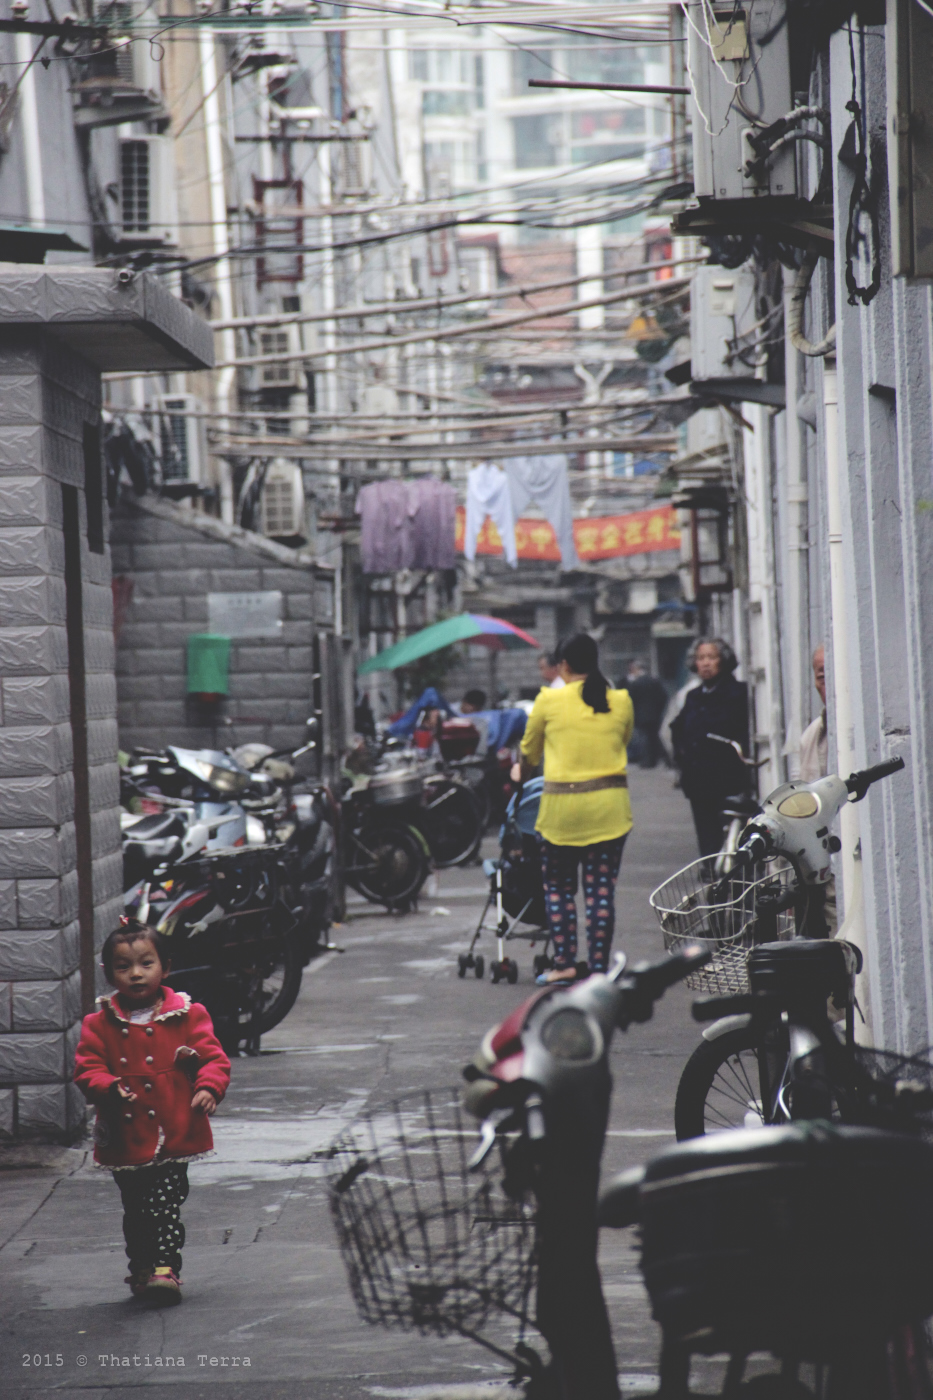 China: The hidden beauty of Shanghai streets (Part 2) - Street life and food at Zhoujiazui area (10)